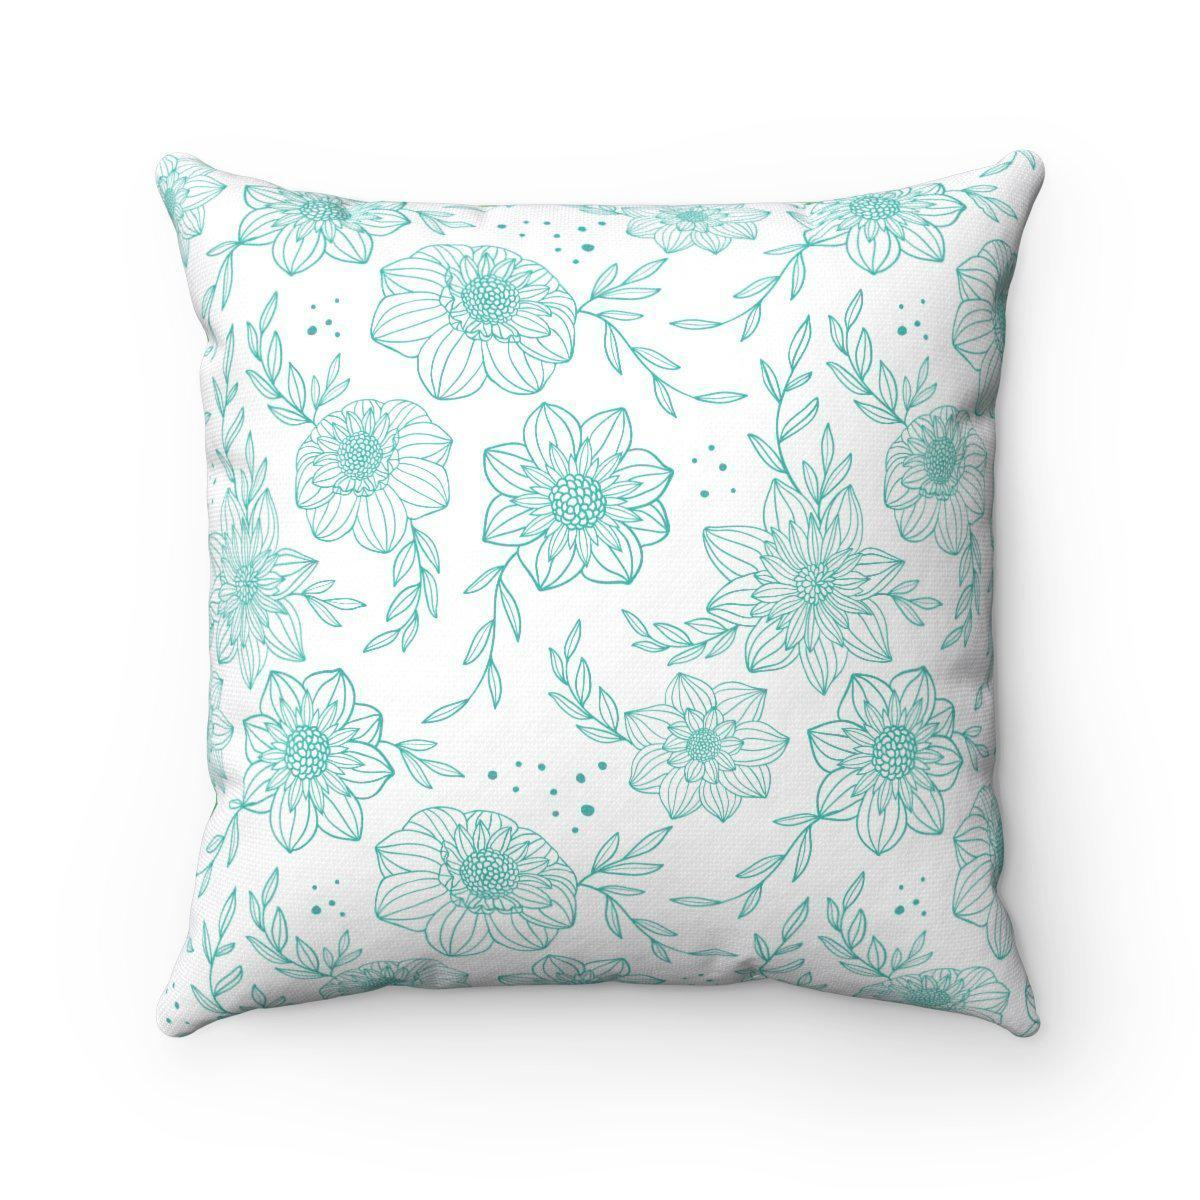 Garden Double sided modern decorative cushion cover-Home Decor - Decorative Accents - Pillows & Throws - Decorative Pillows-Maison d'Elite-18x18-Très Elite